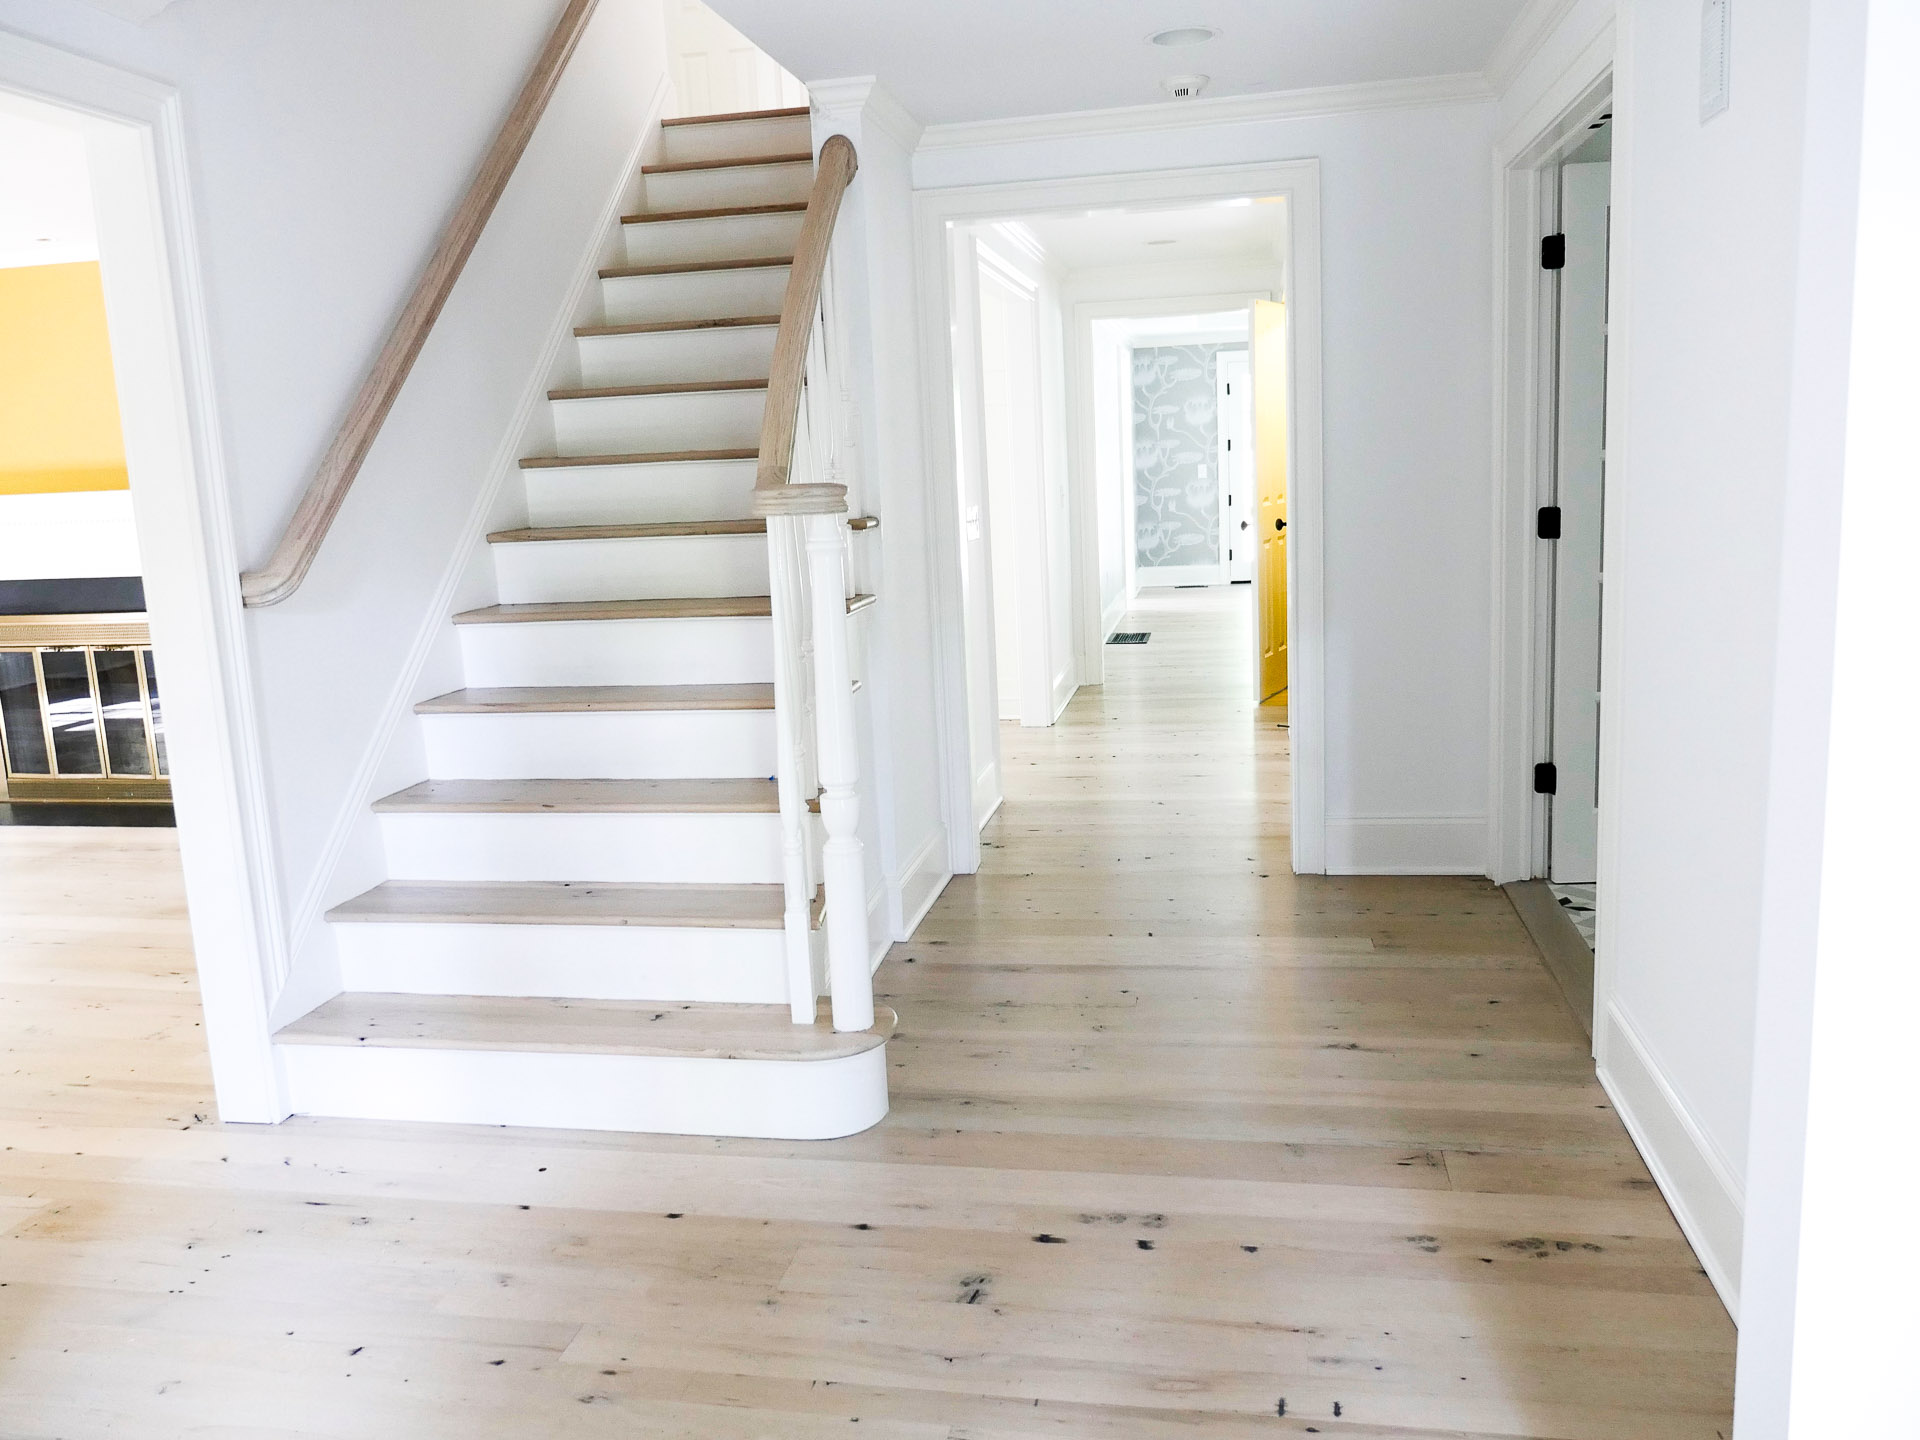 Renovation Virgin: What I Learned From The Process - Happily Eva After